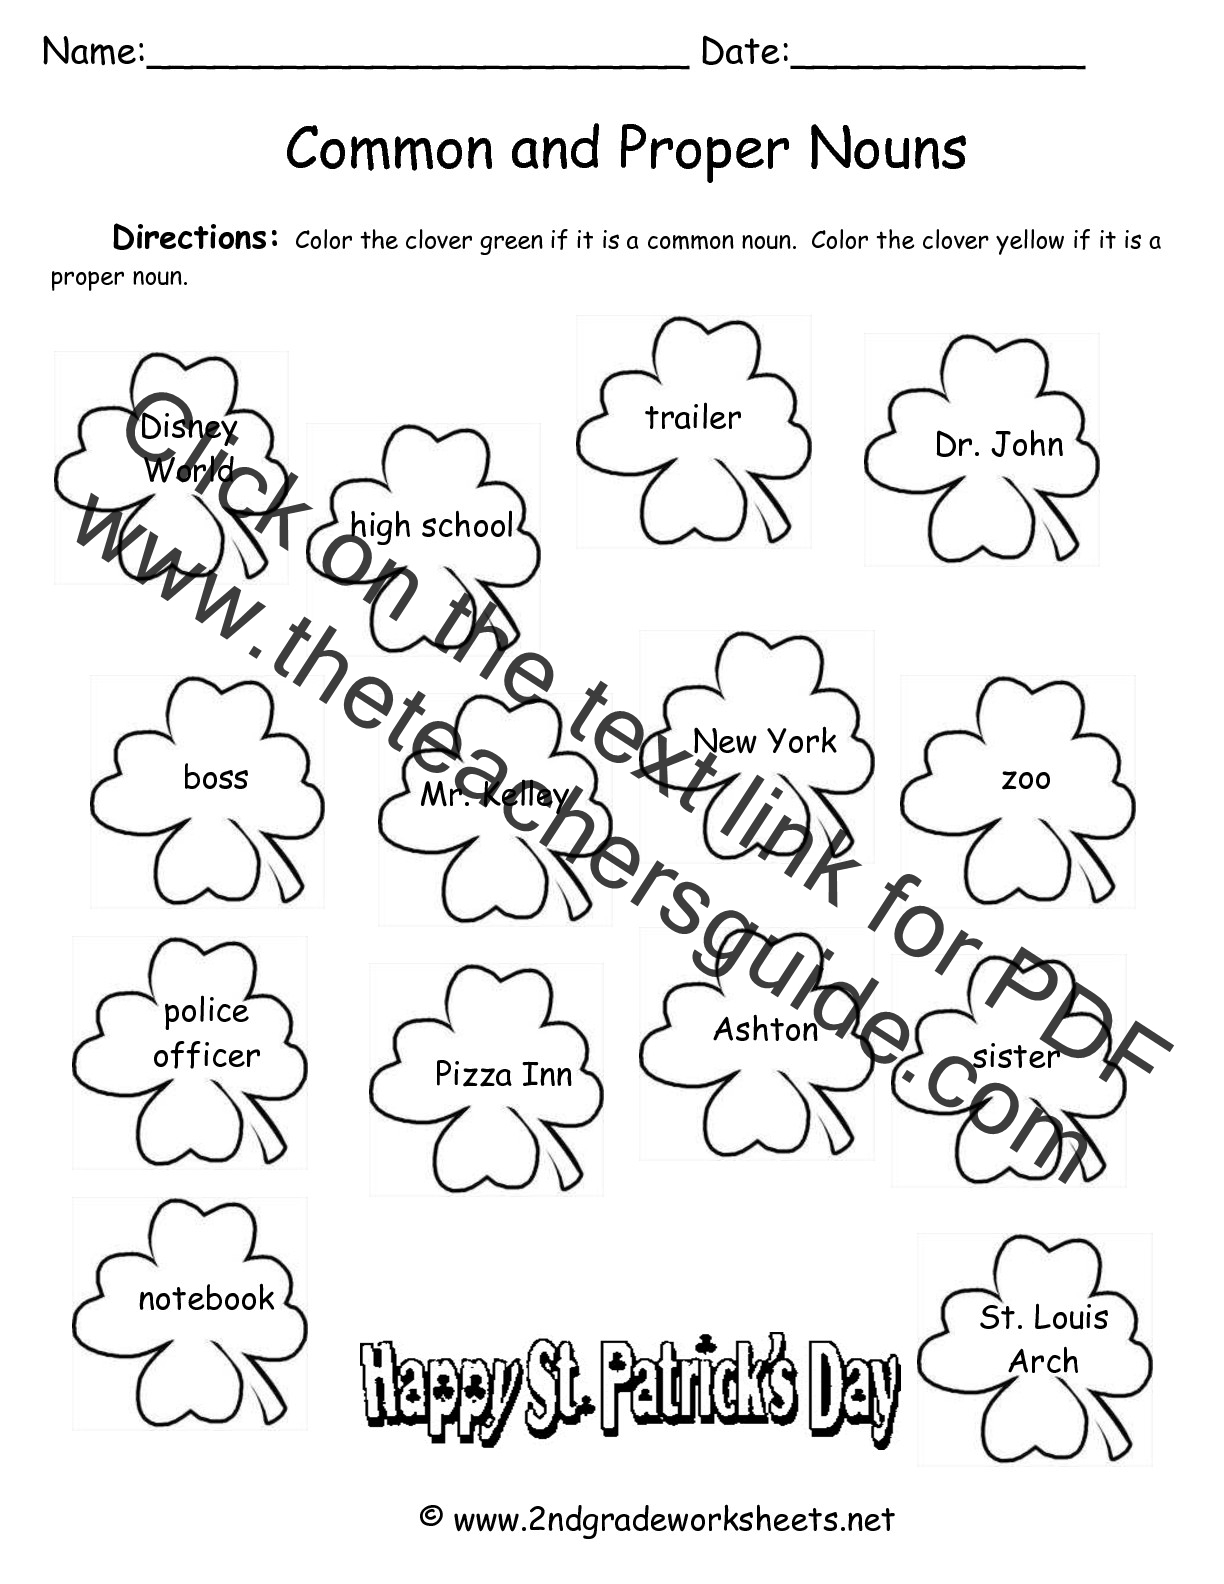 Worksheet Kindergarten Antonyms Wosenly Free Worksheet – Antonyms Worksheets for Kindergarten